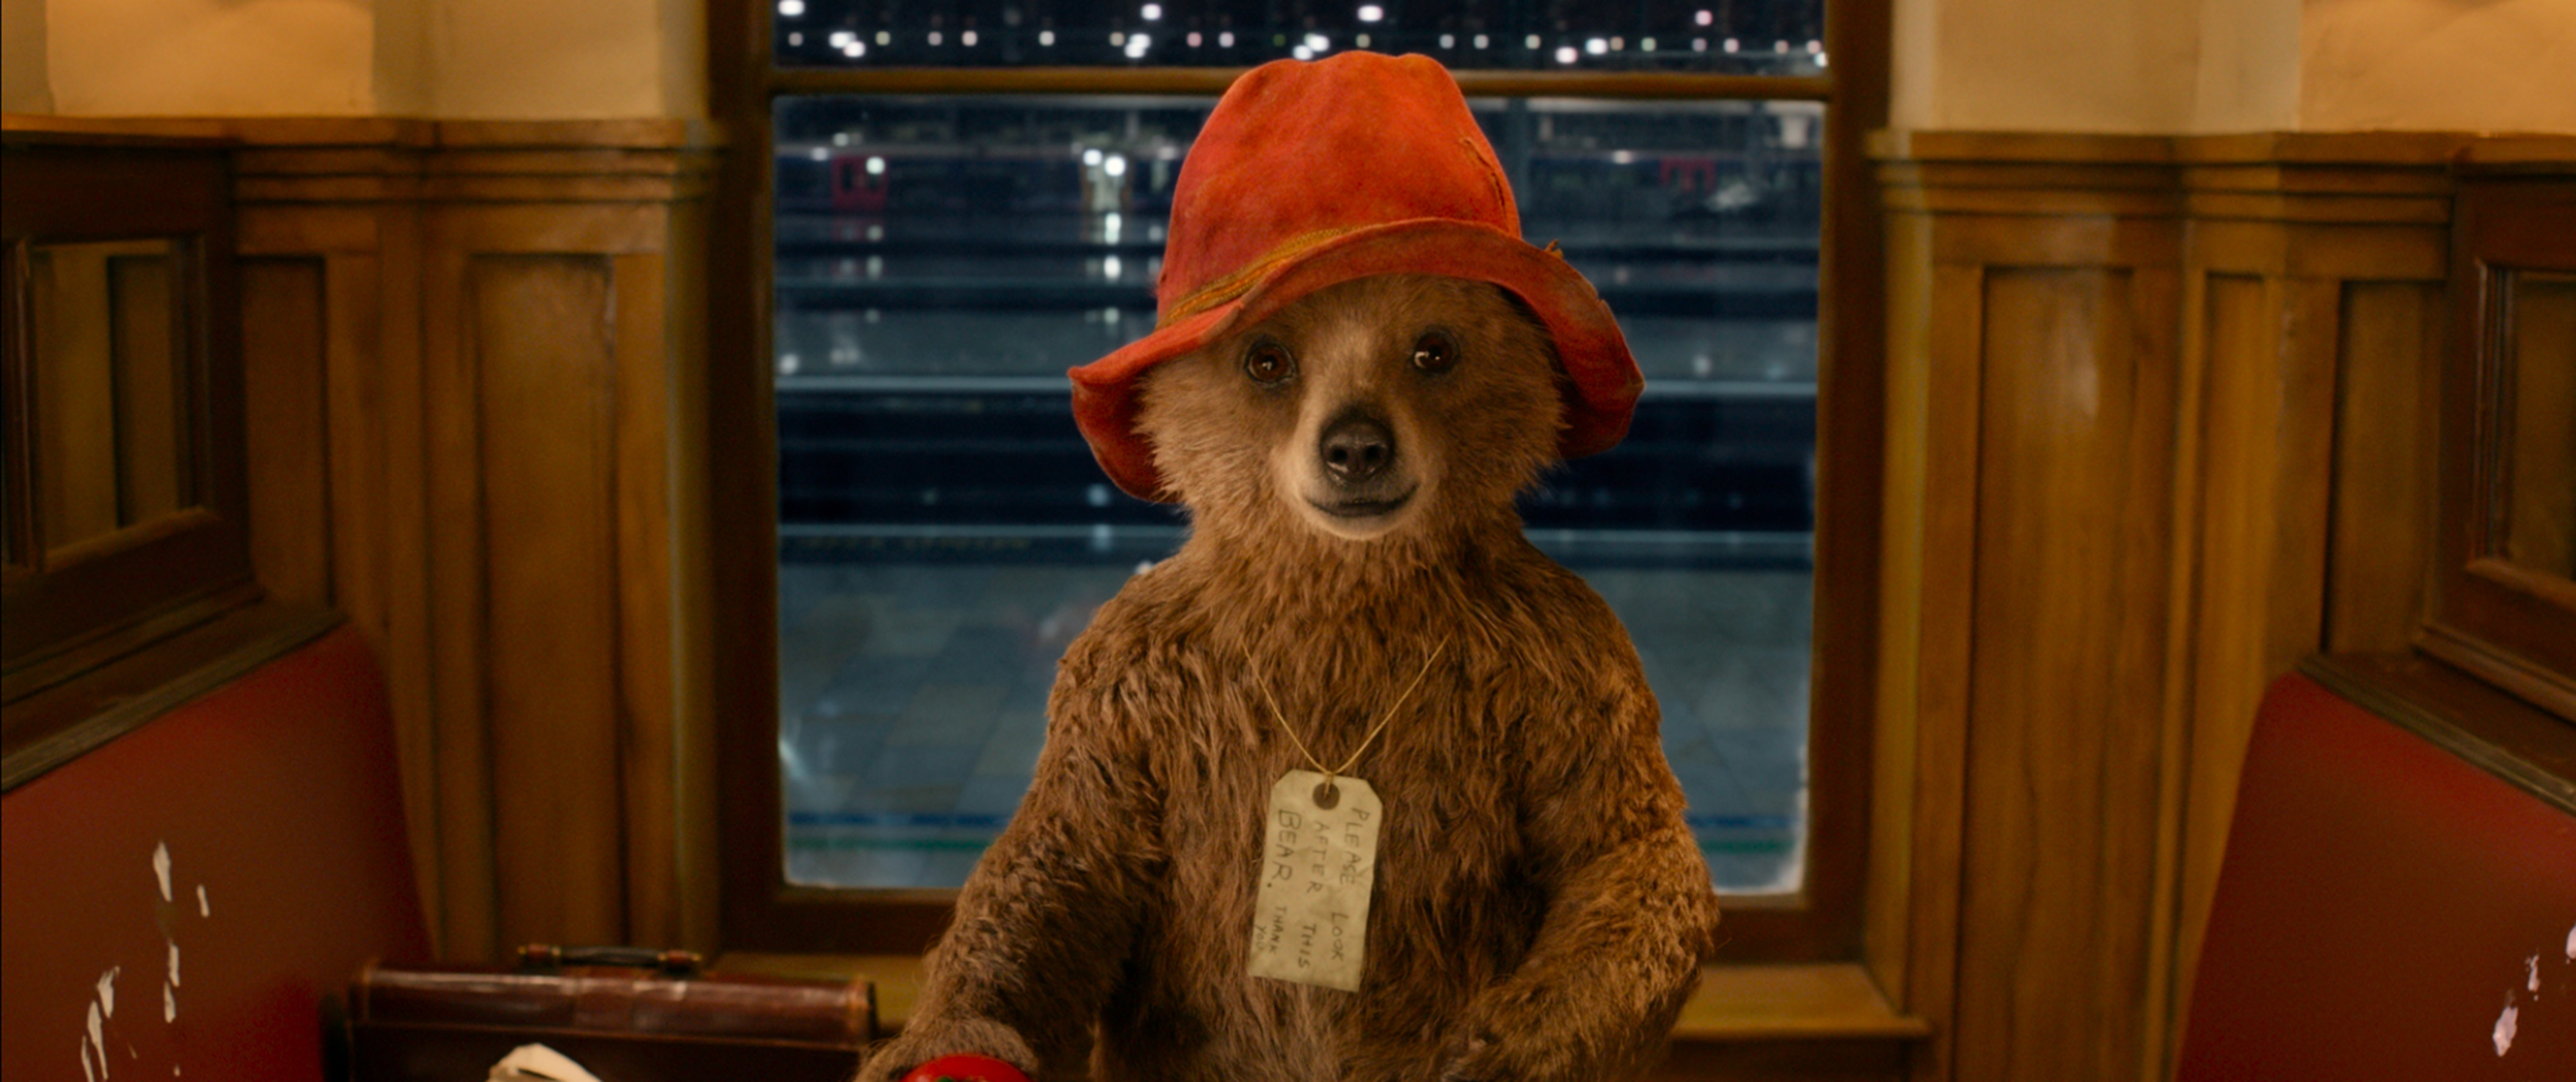 (C)2014 STUDIOCANAL S.A. TF1 FILMS PRODUCTION S.A.S Paddington Bear™, Paddington™ AND PB™ are trademarks of Paddington and Company Limited